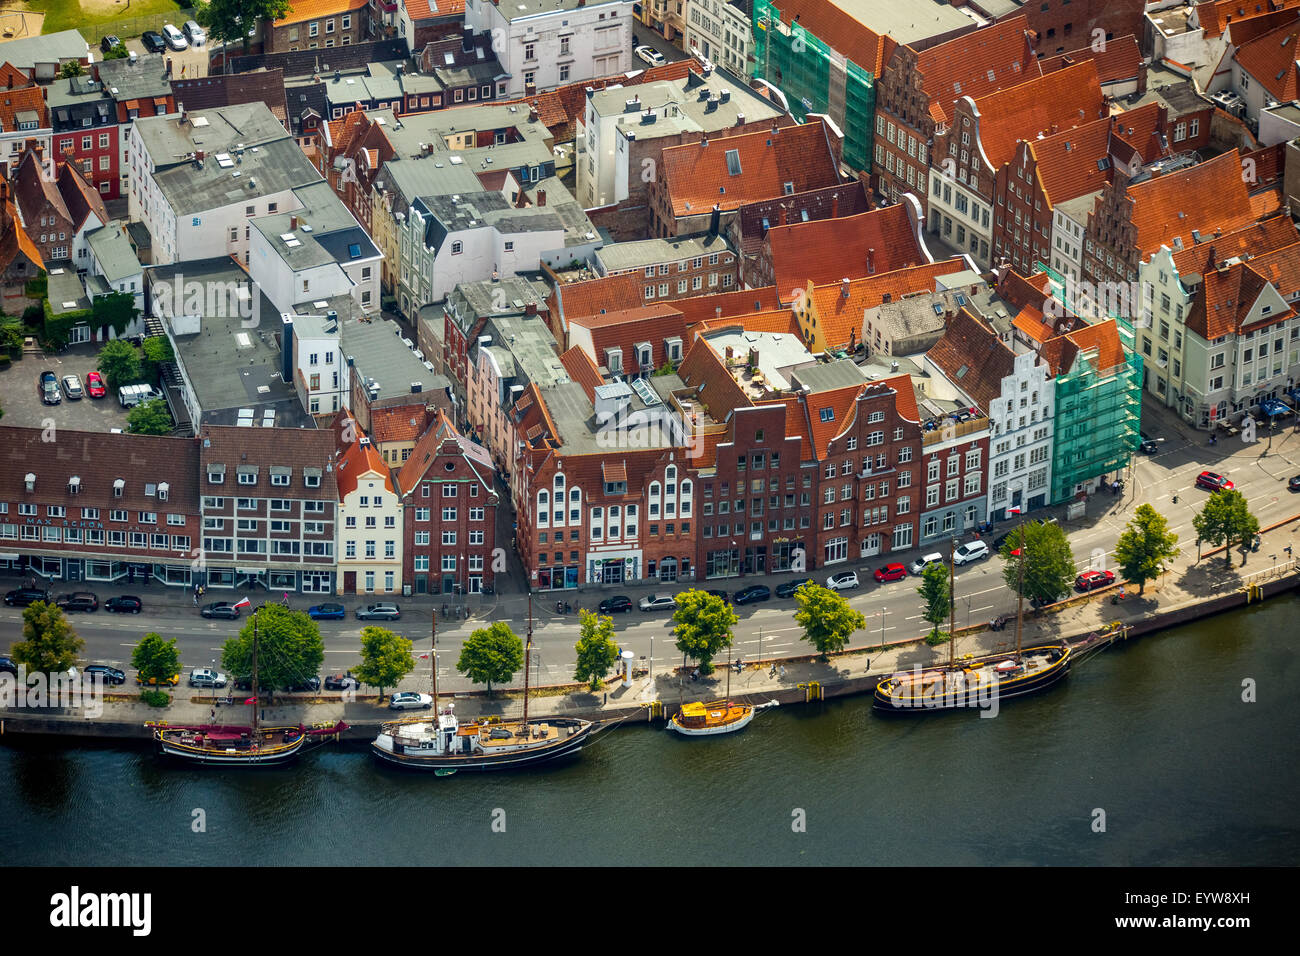 Town houses by the Trave, Bay of Lübeck, Lübeck, Schleswig-Holstein, Germany - Stock Image